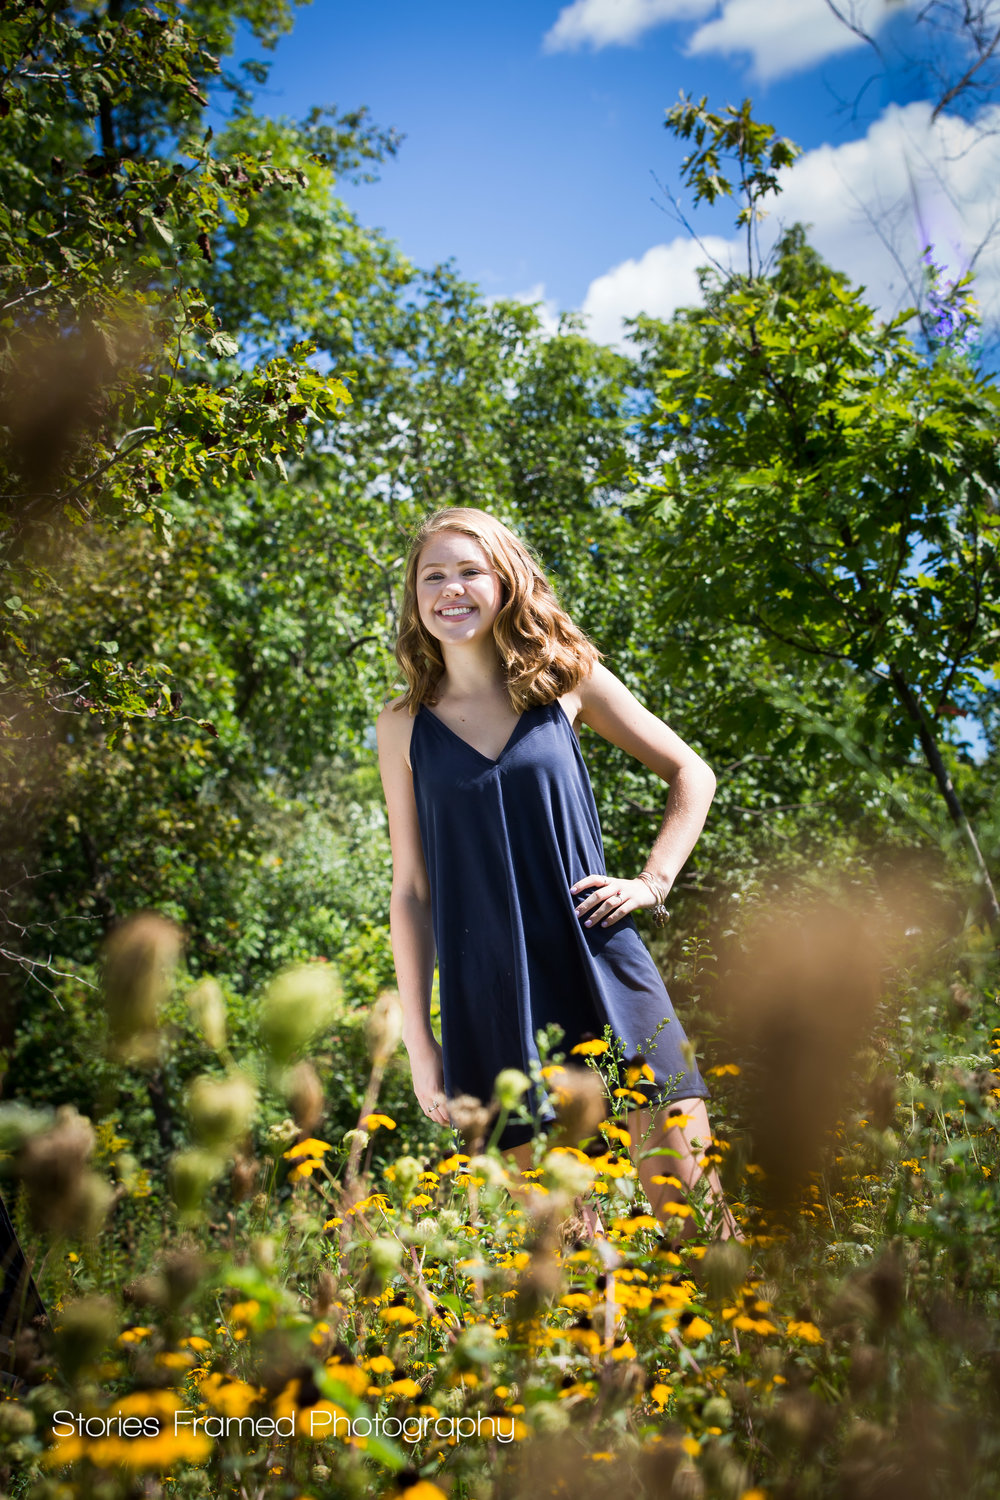 Stories Framed Photography | MKEseniors | girl in flowers